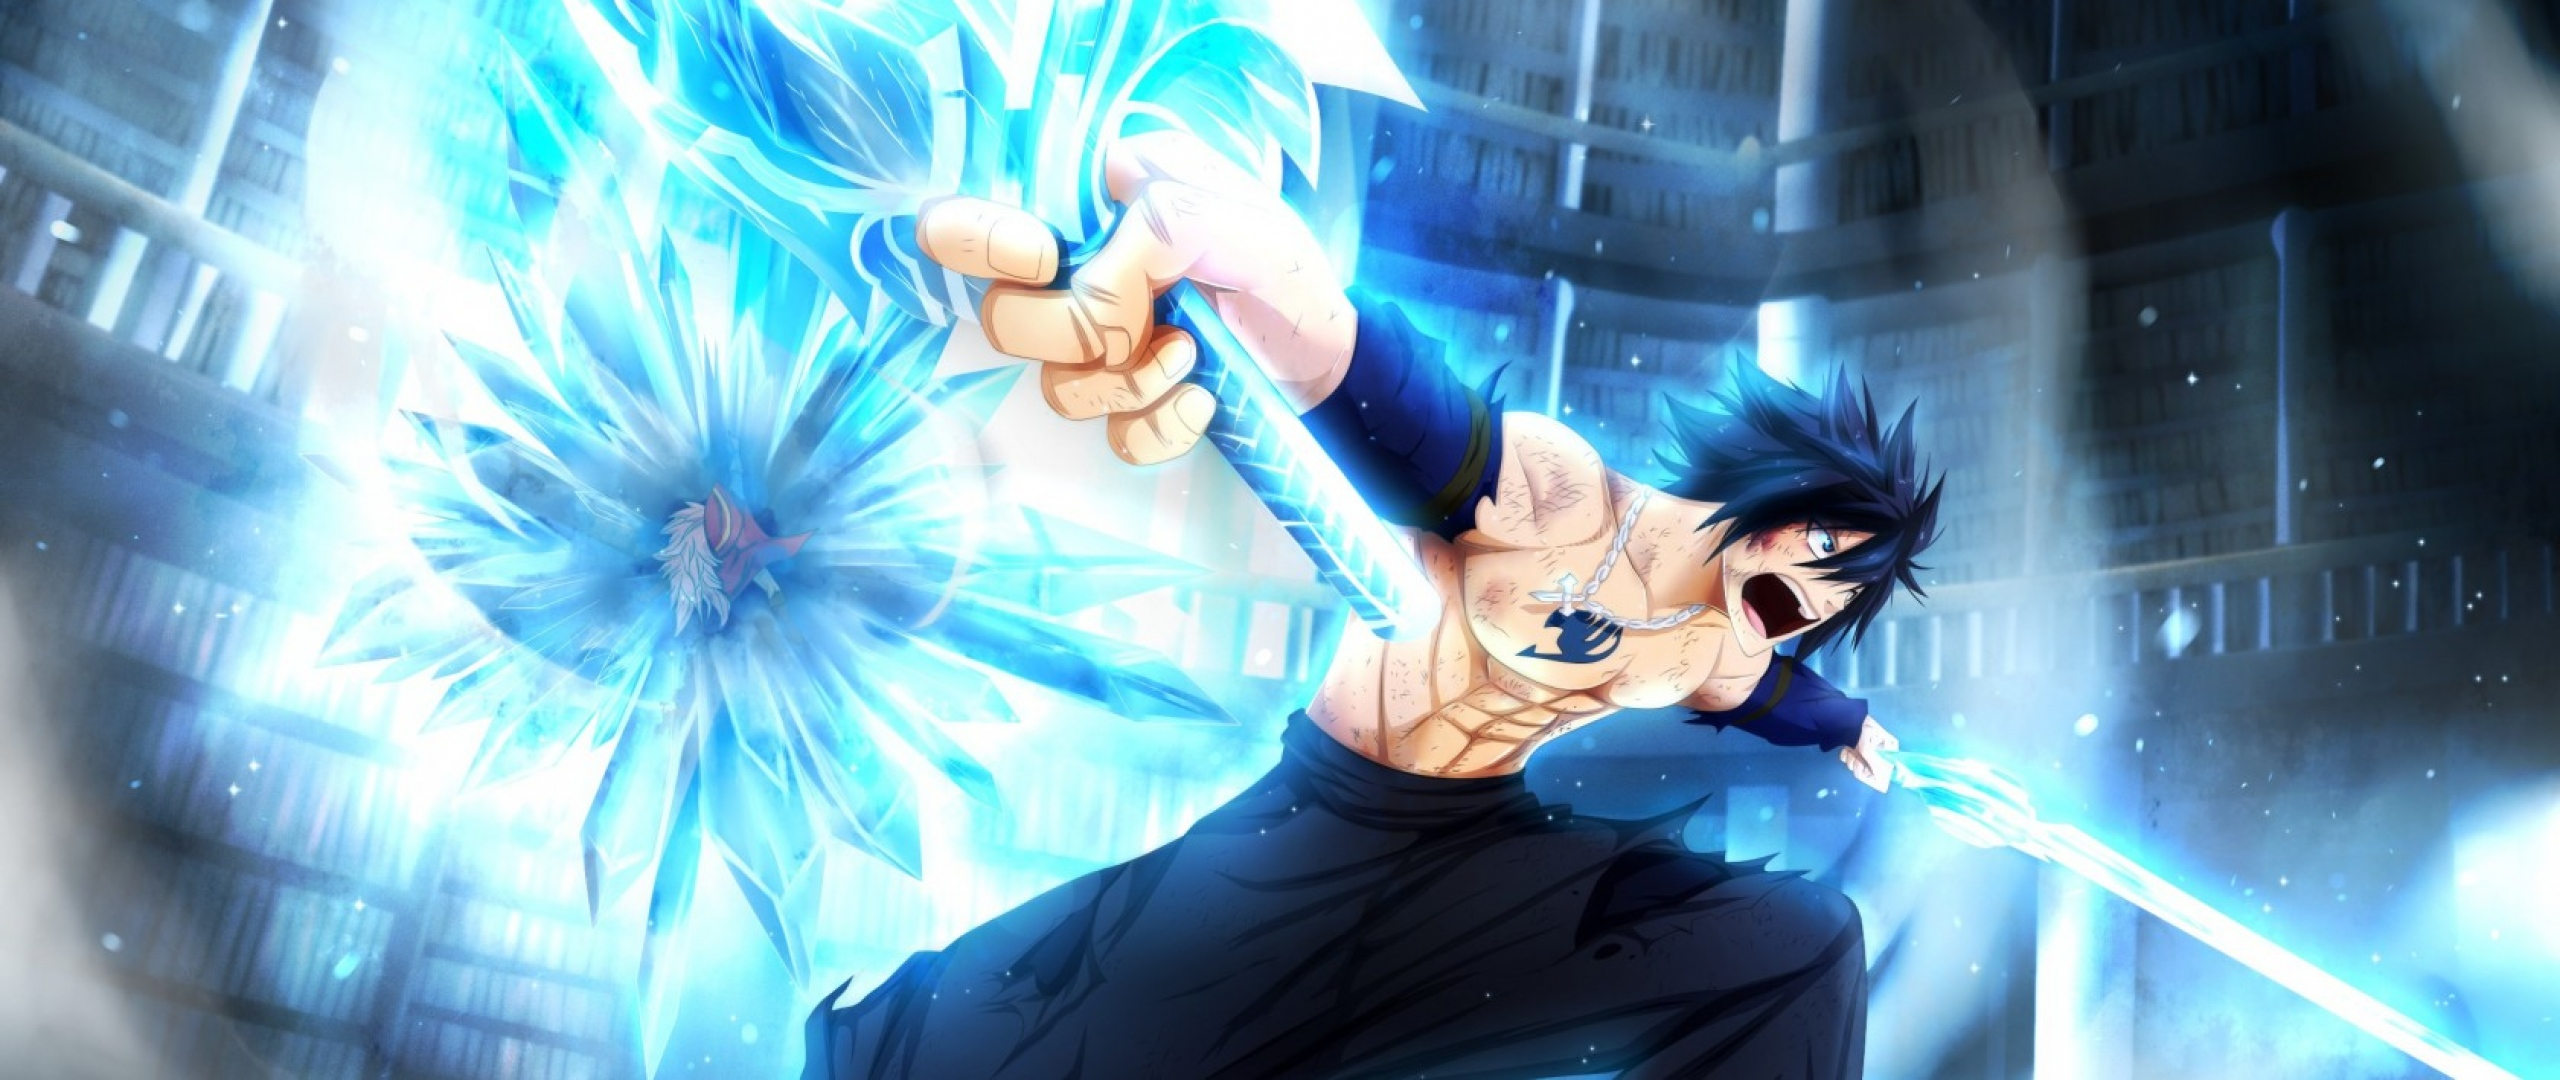 Download Wallpaper 2560x1080 Fairy tail Gray fullbuster 2560x1080